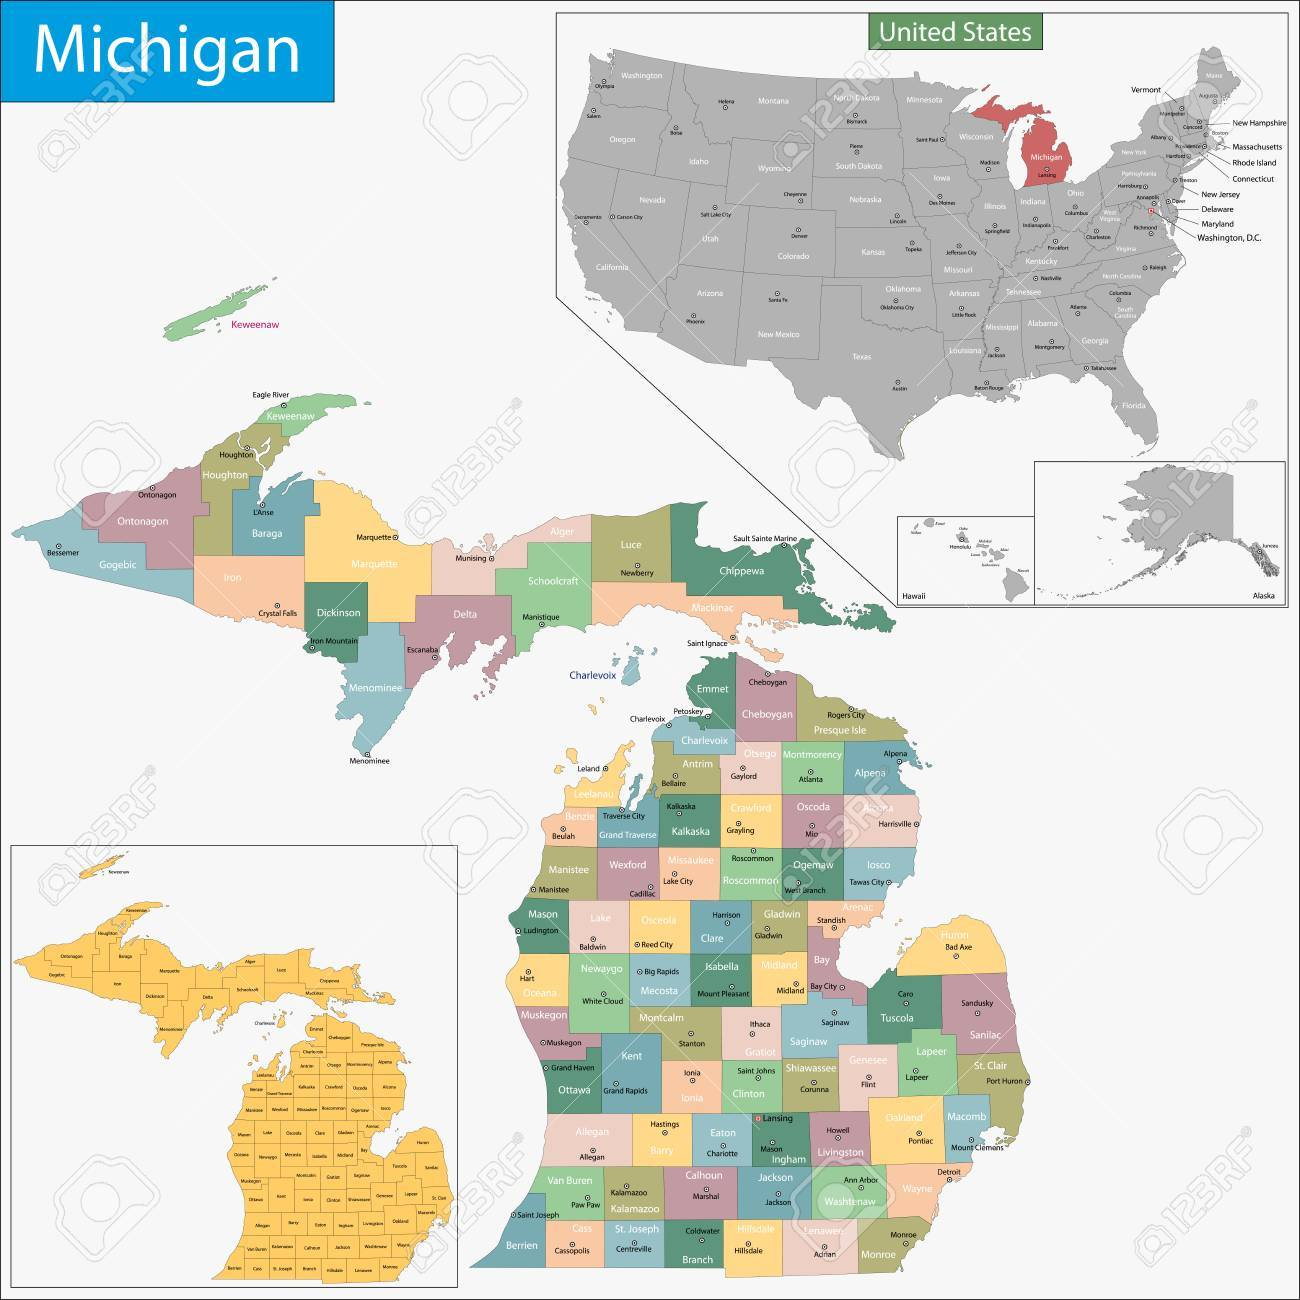 Michigan State On Usa Map Michigan Stock Vector 321233885 Where